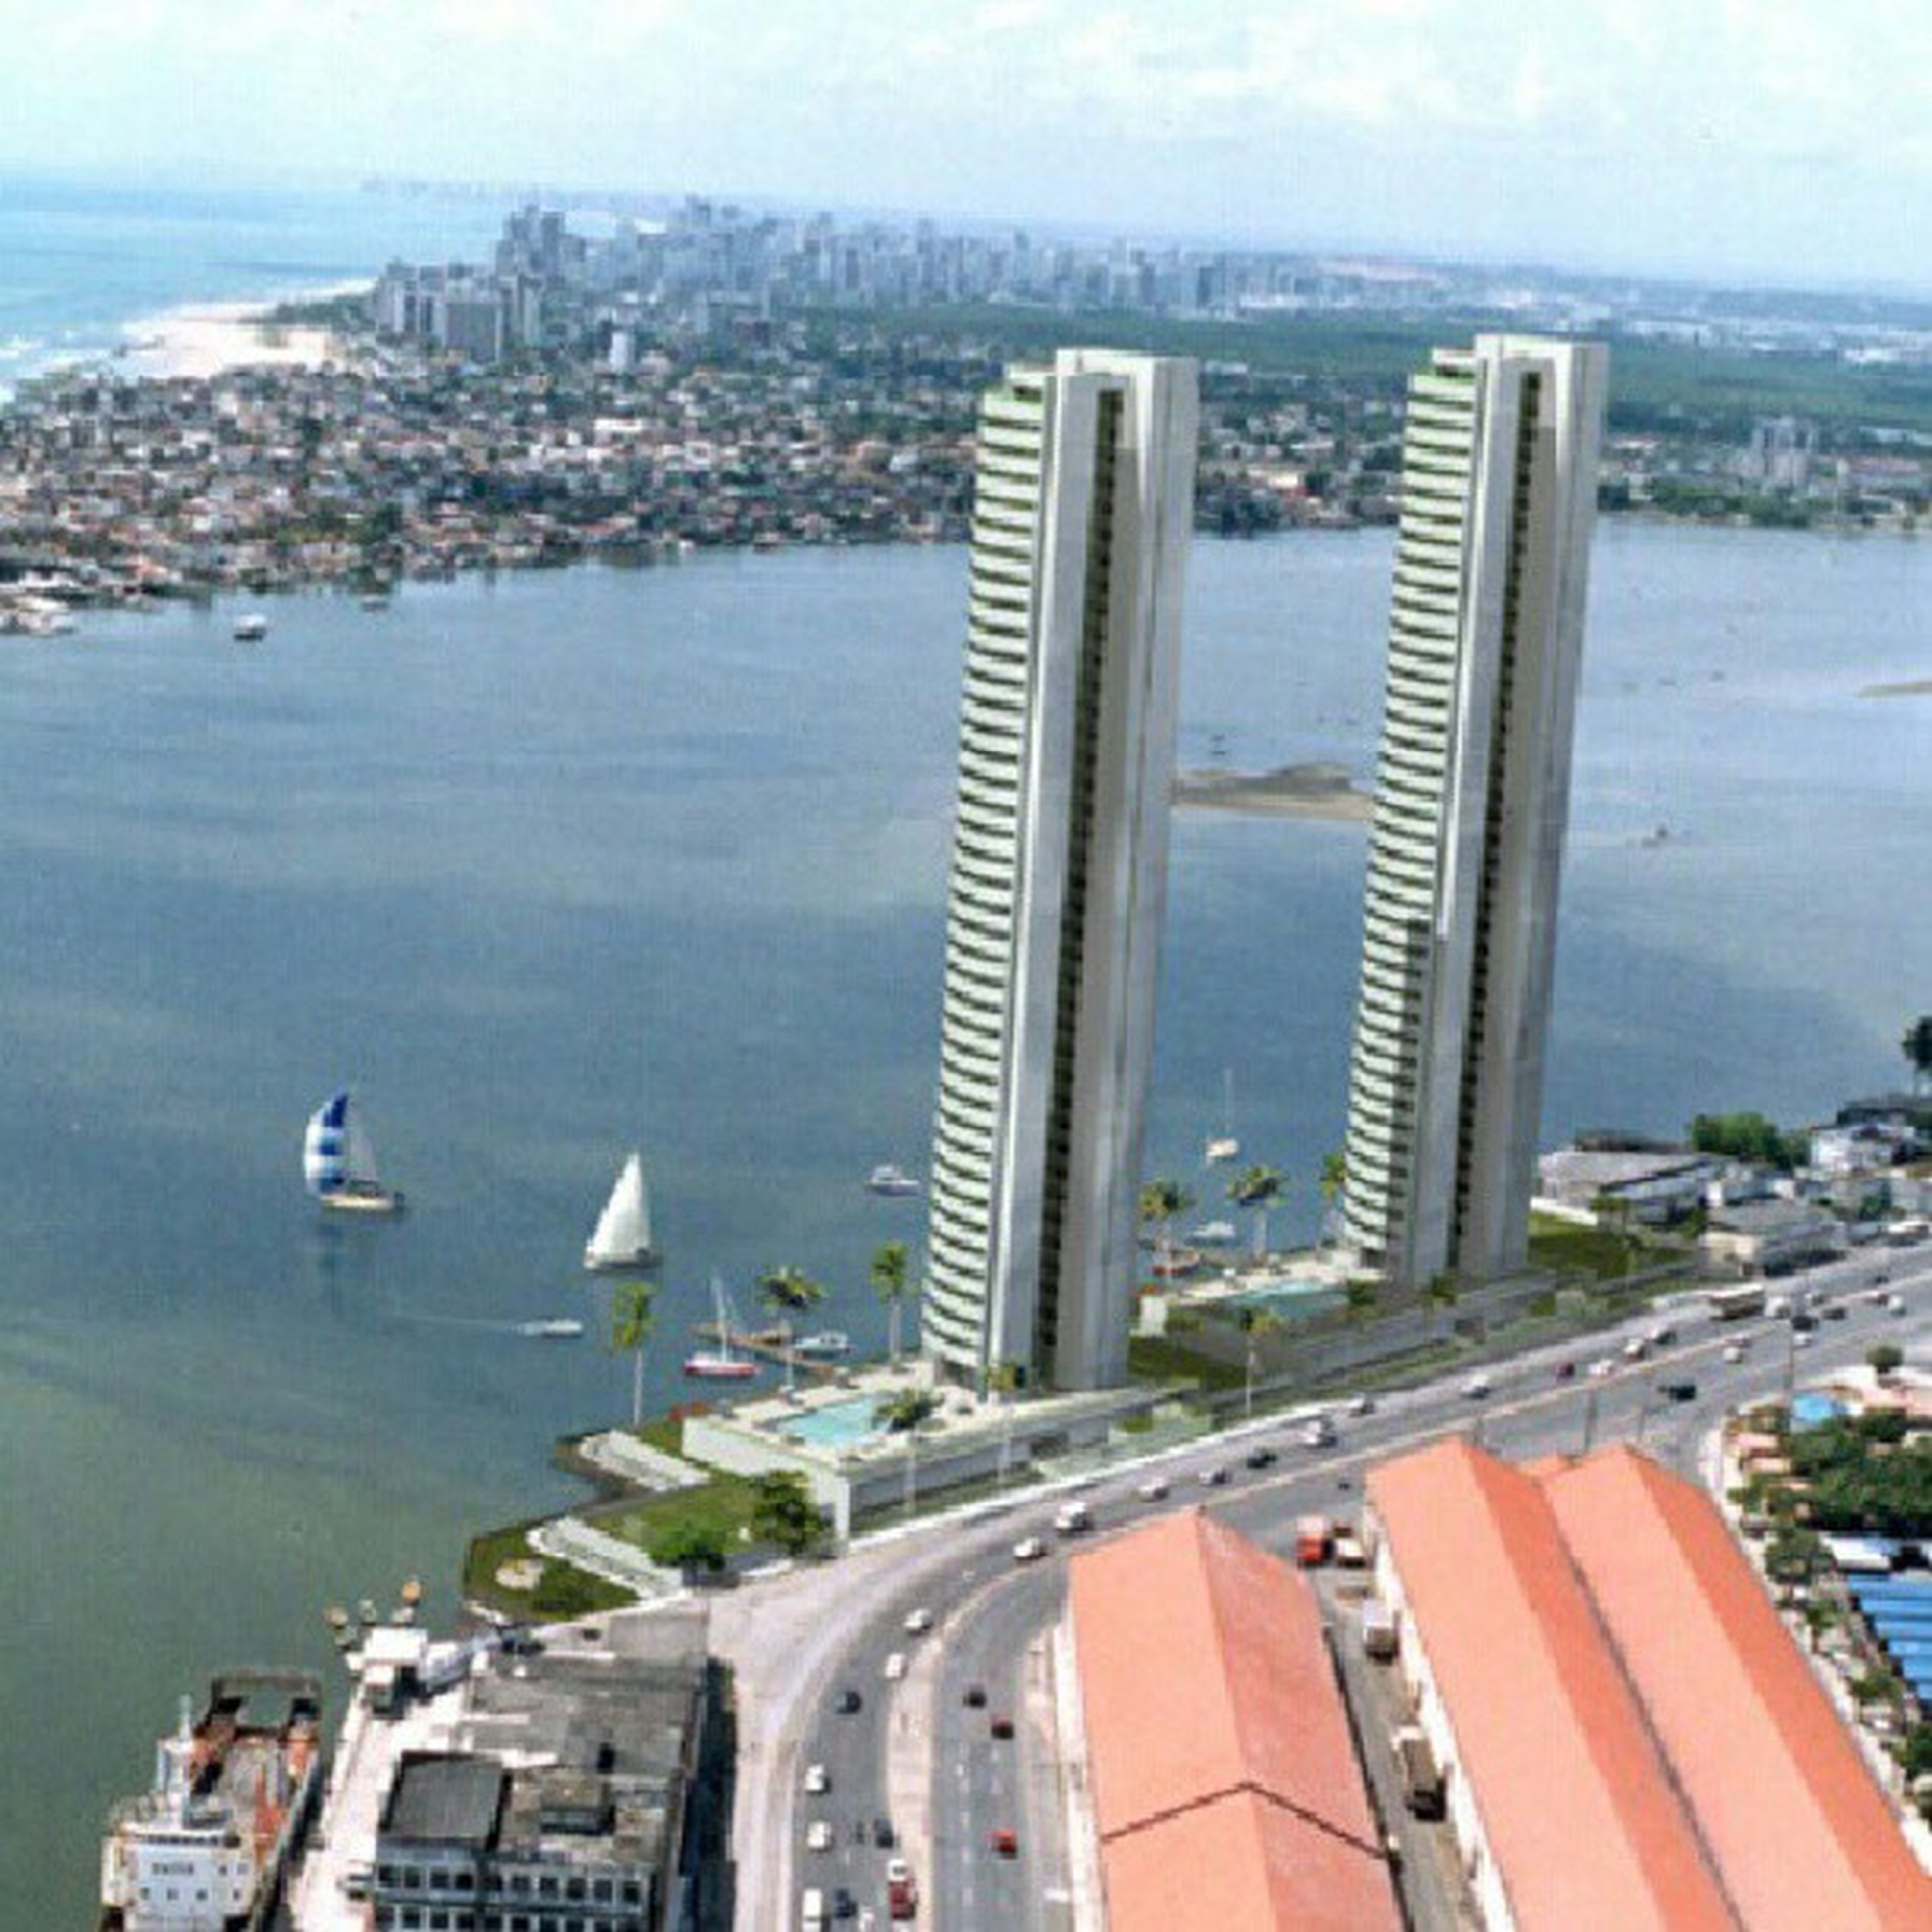 architecture, building exterior, built structure, city, water, cityscape, sea, river, high angle view, flying, transportation, bird, harbor, sky, day, skyscraper, residential district, residential building, nautical vessel, residential structure